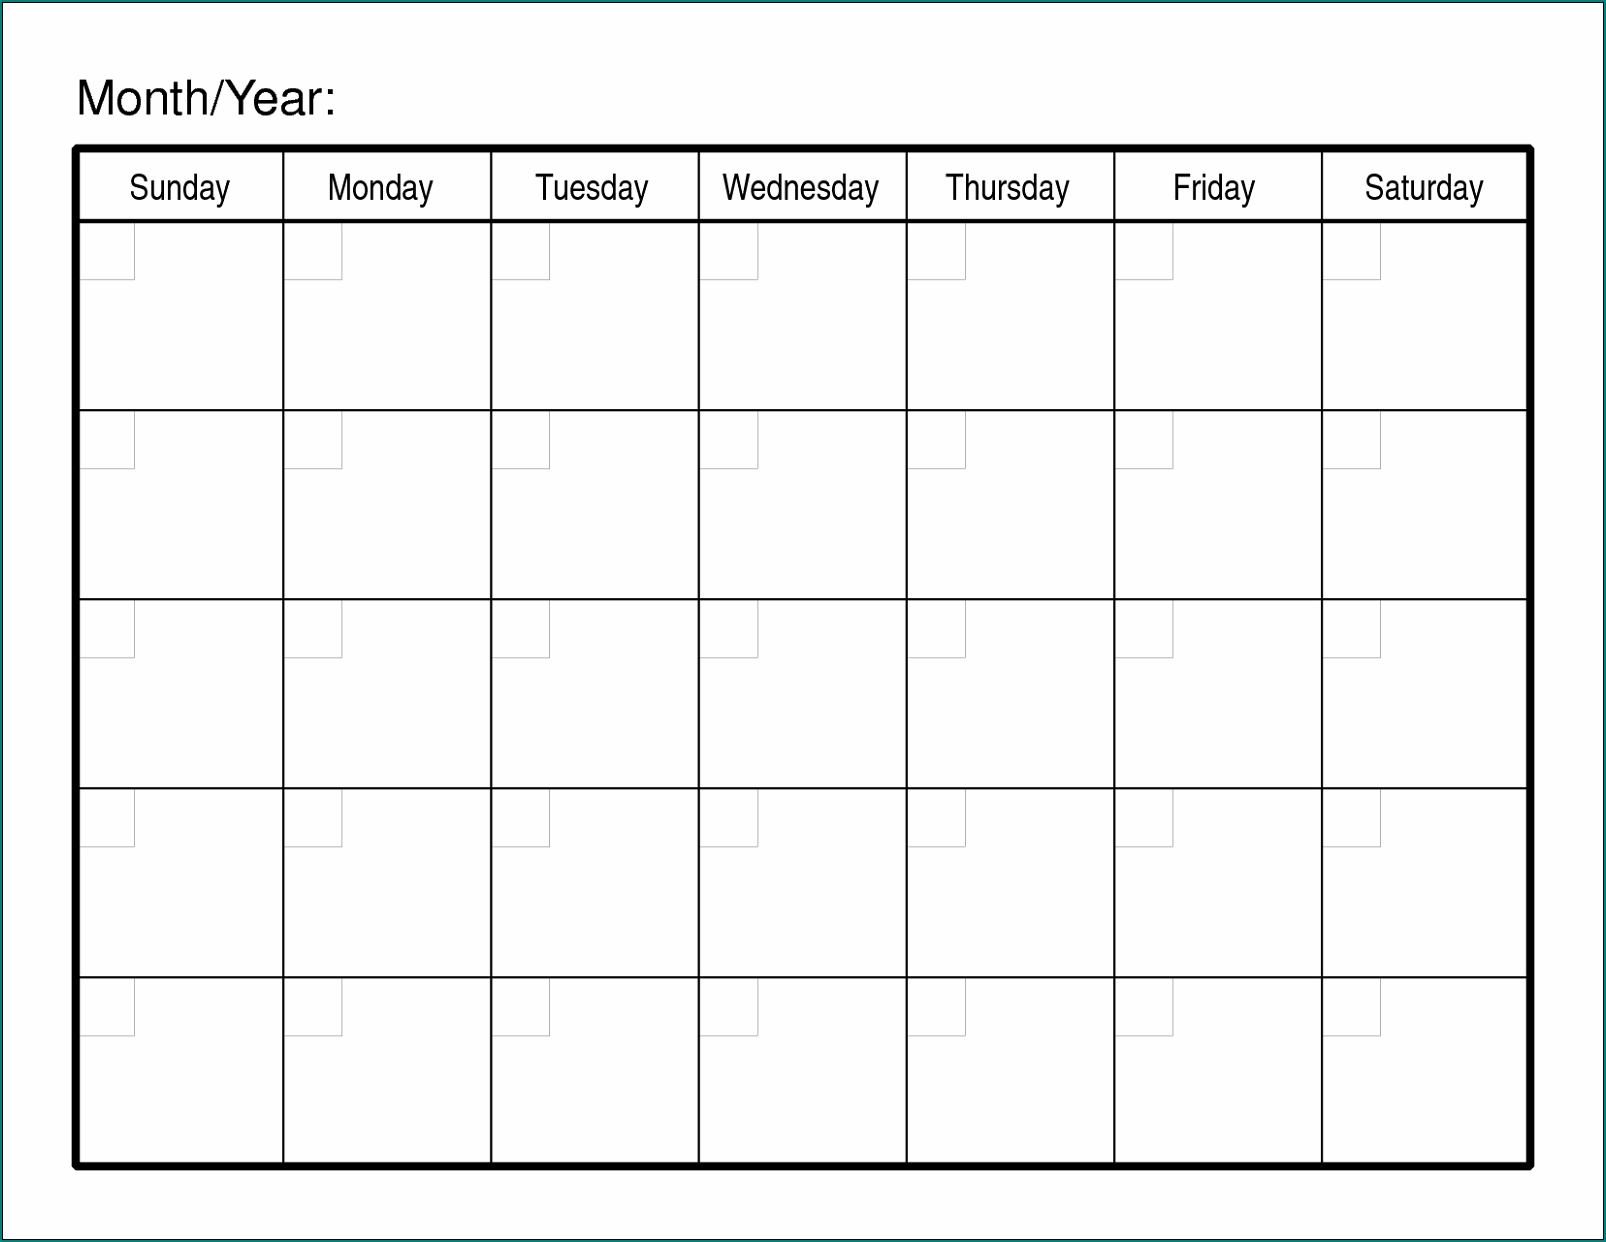 Monthly Employee Schedule Template Sample